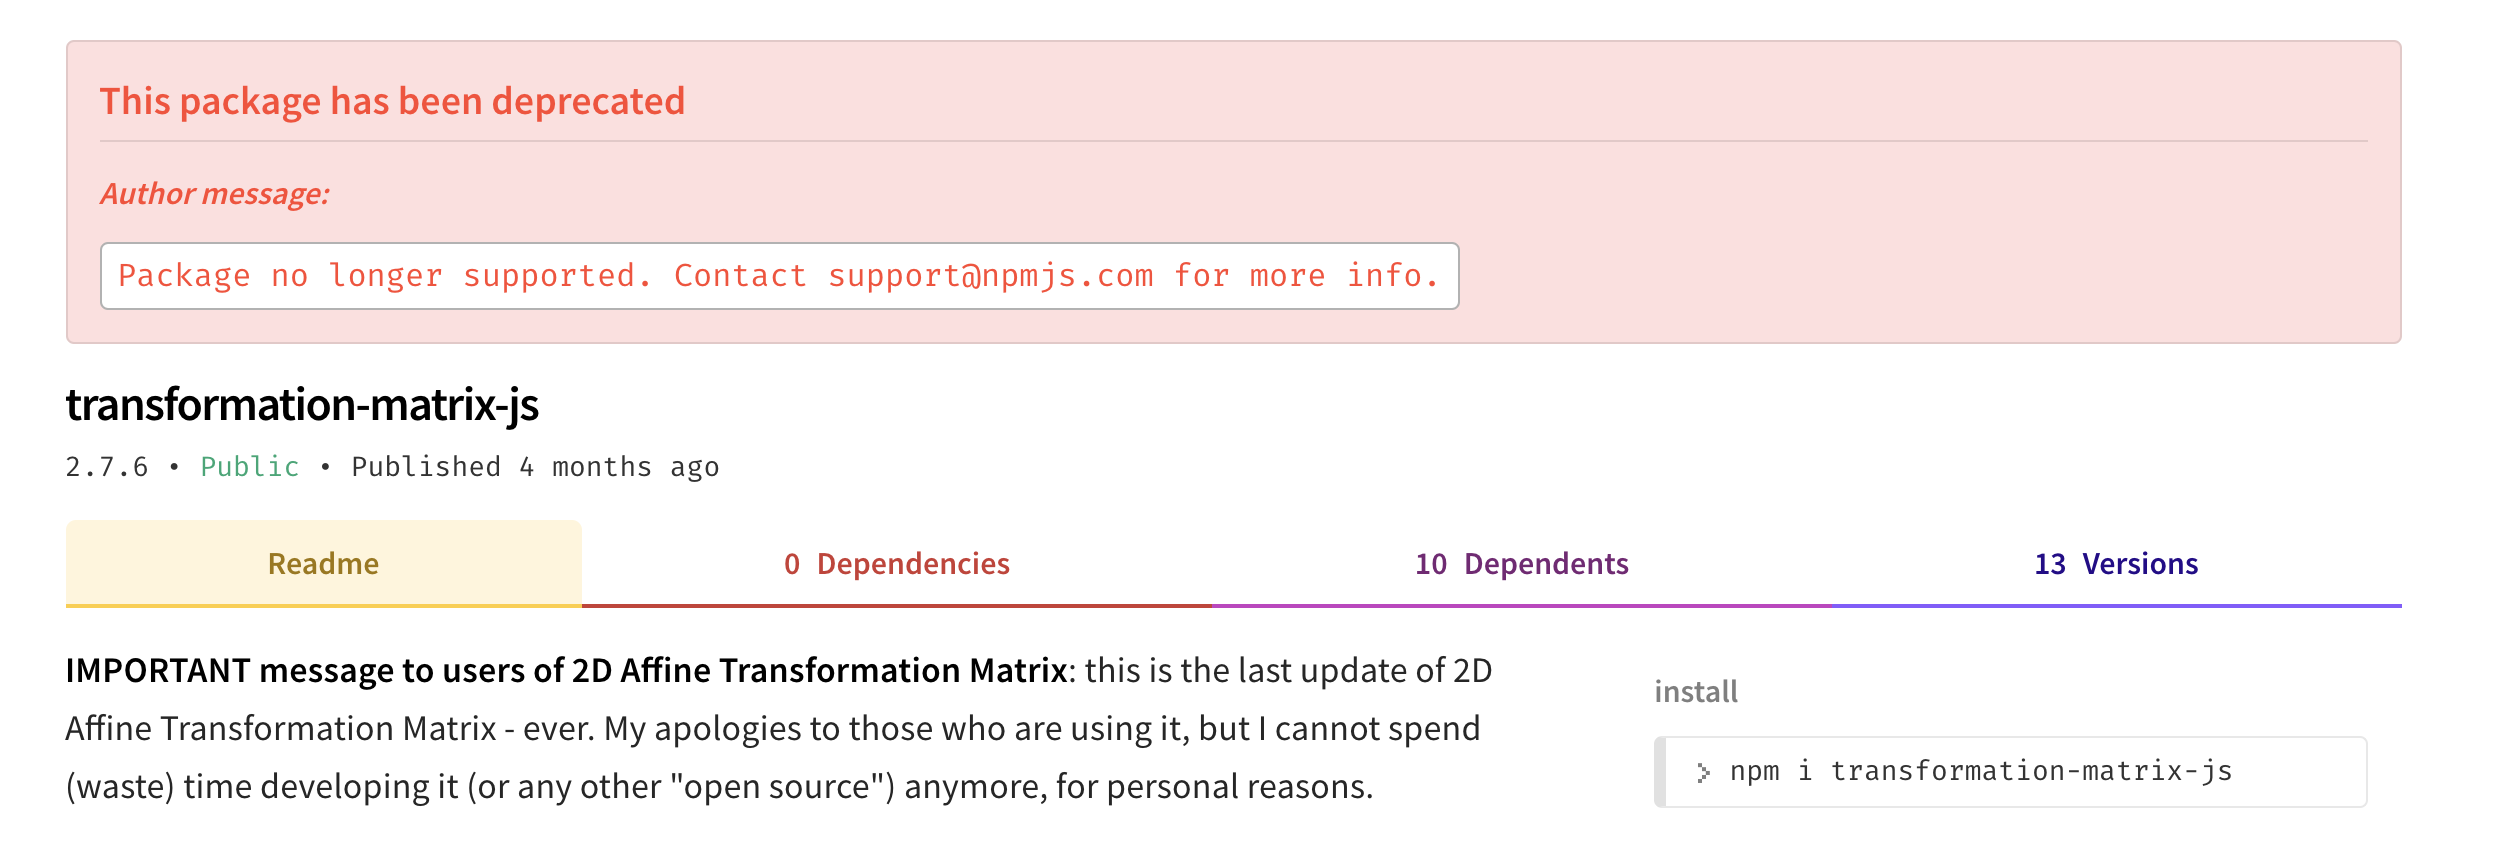 transformation-matrix-js is not supported anymore · Issue